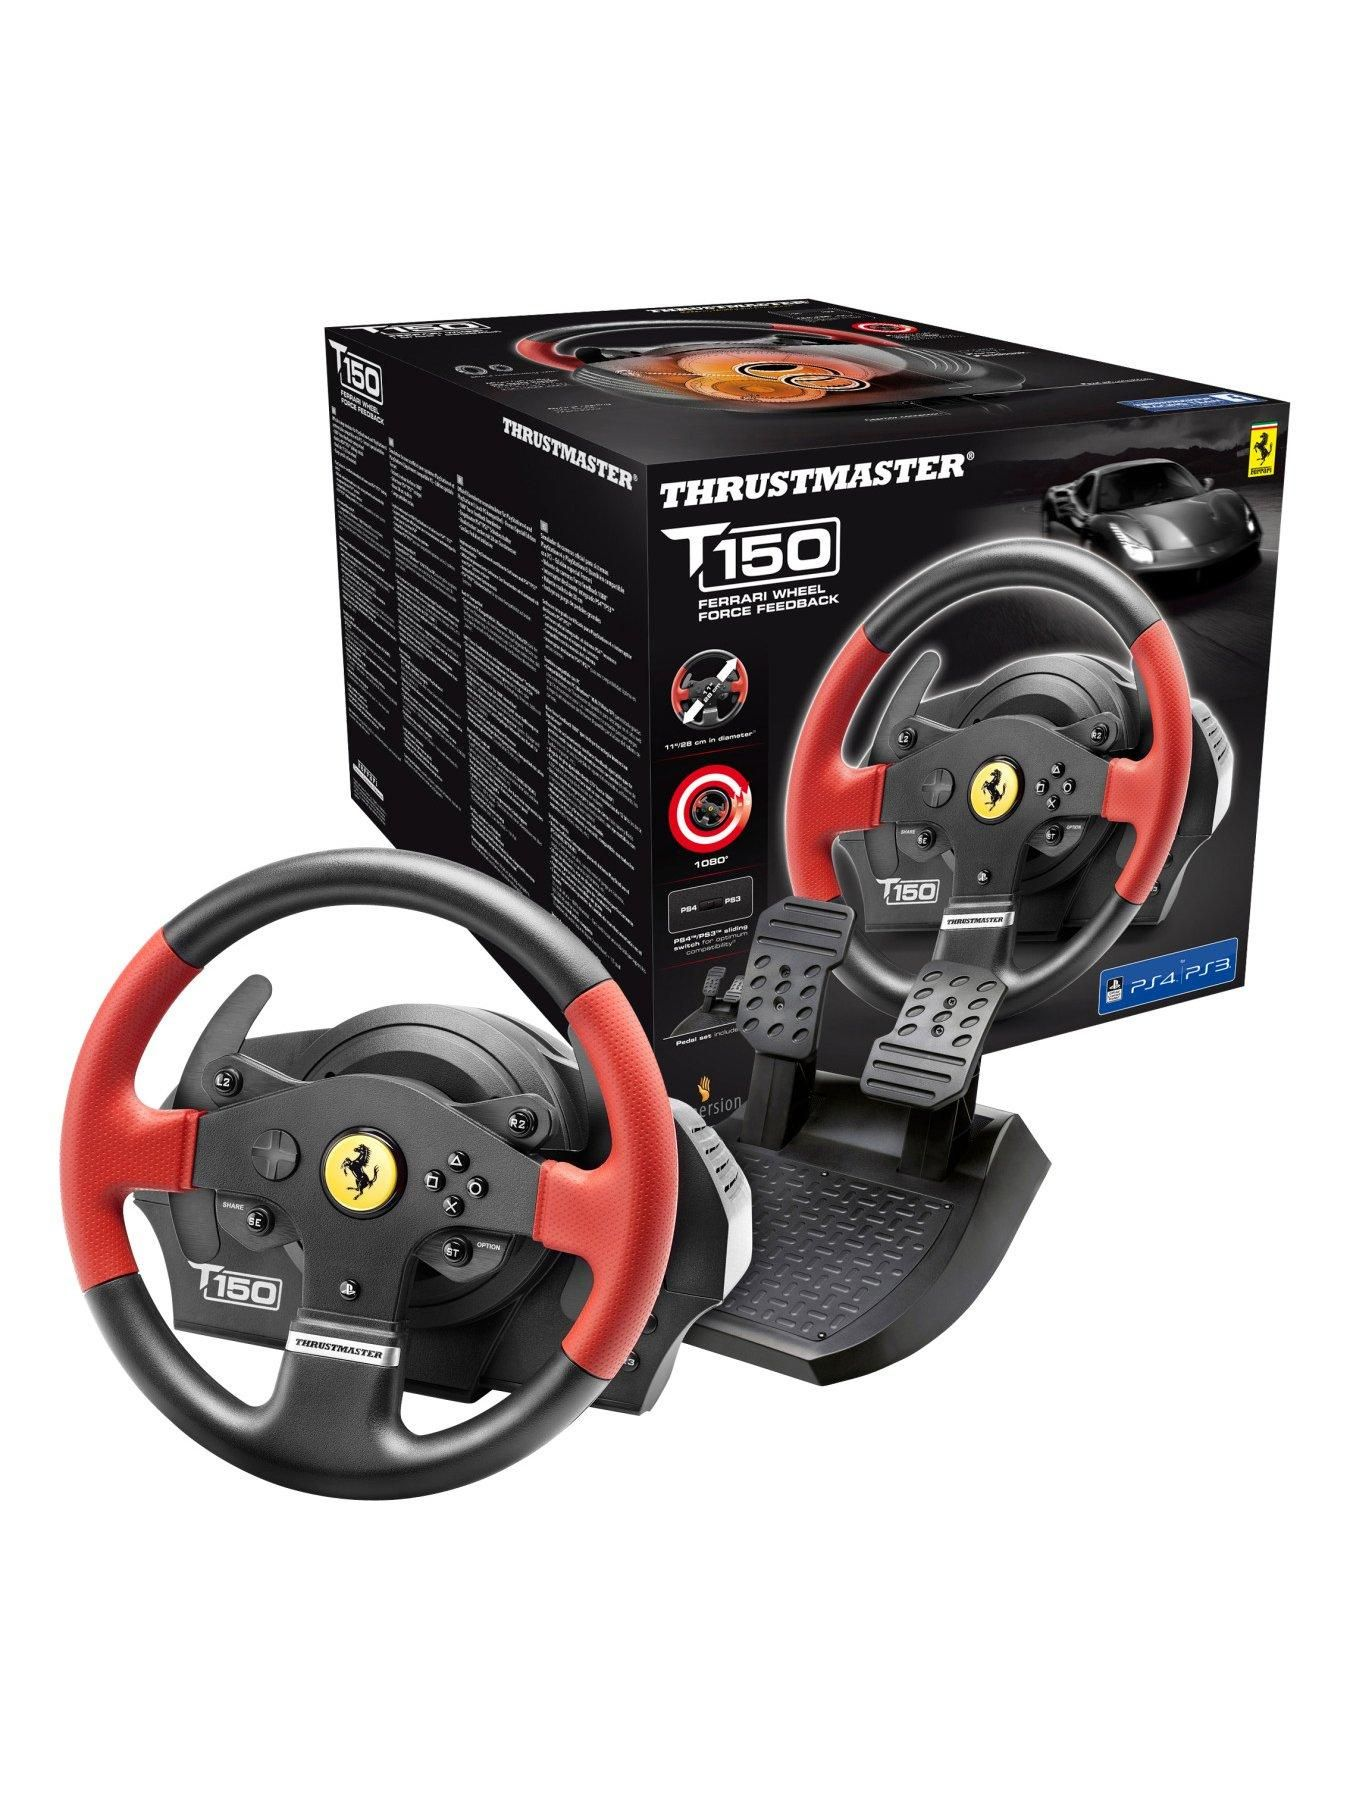 Thrustmaster T150 Ferrari Edition One Colour In 2020 Ferrari